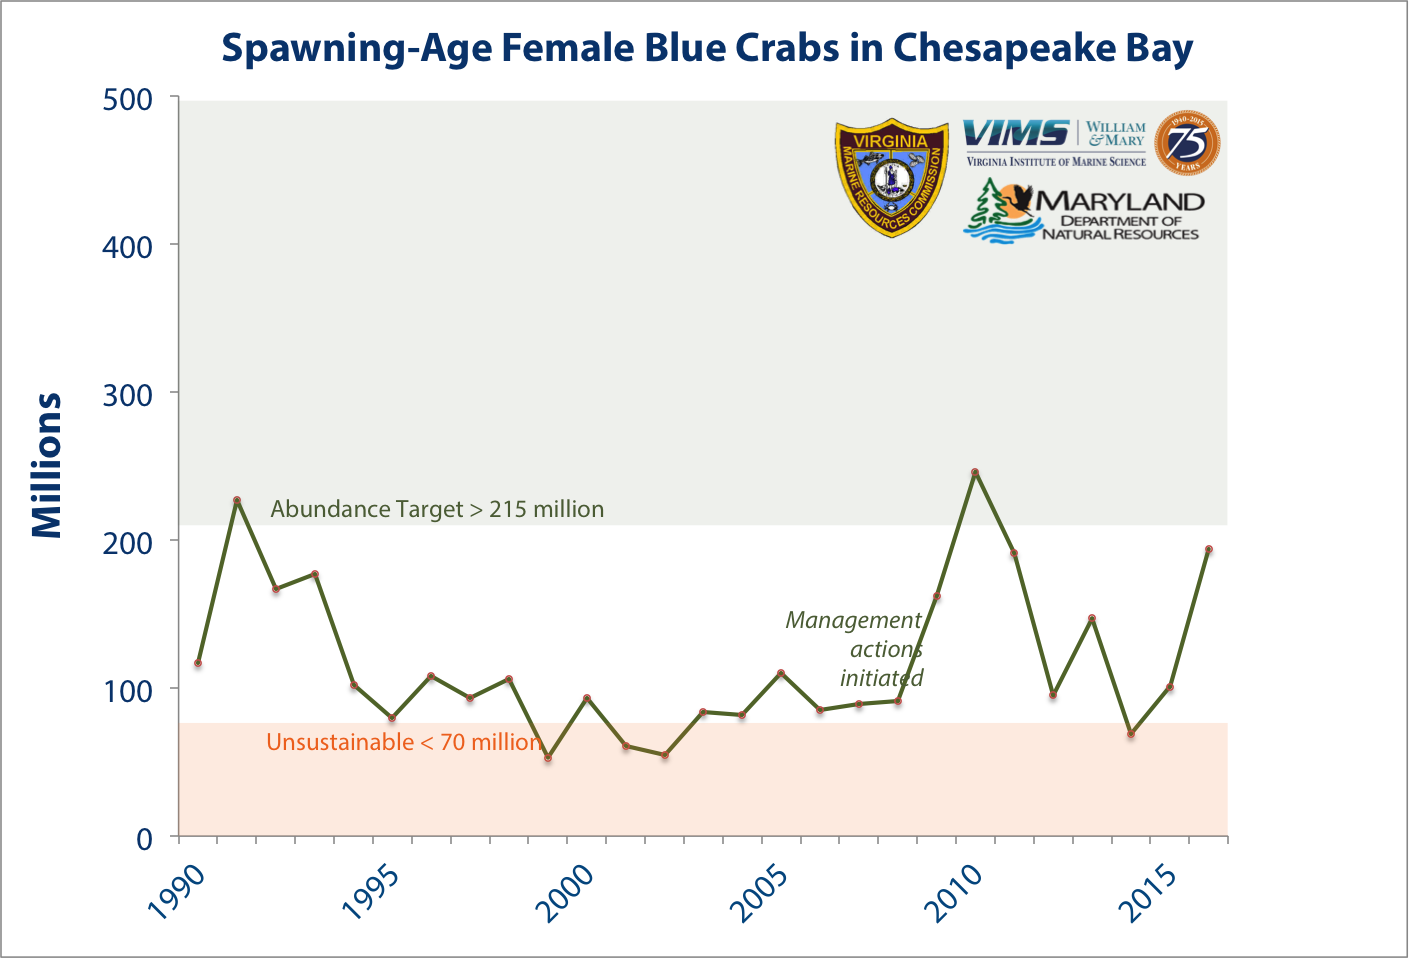 Number of spawning age female blue crabs in Chesapeake Bay in millions. Click for larger image.